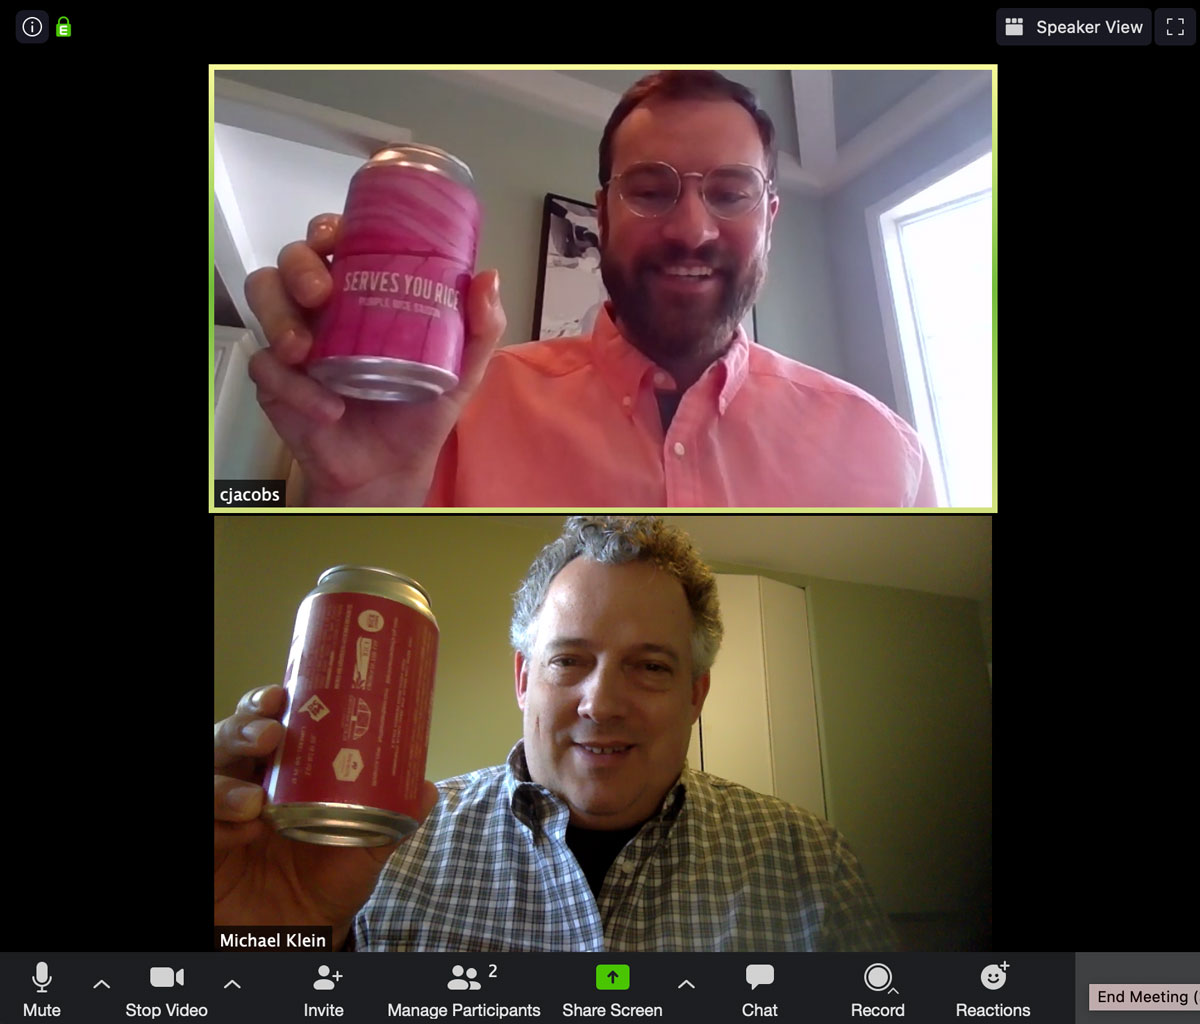 Two men celebrate virtual happy hour with bright pink cans of pink beer